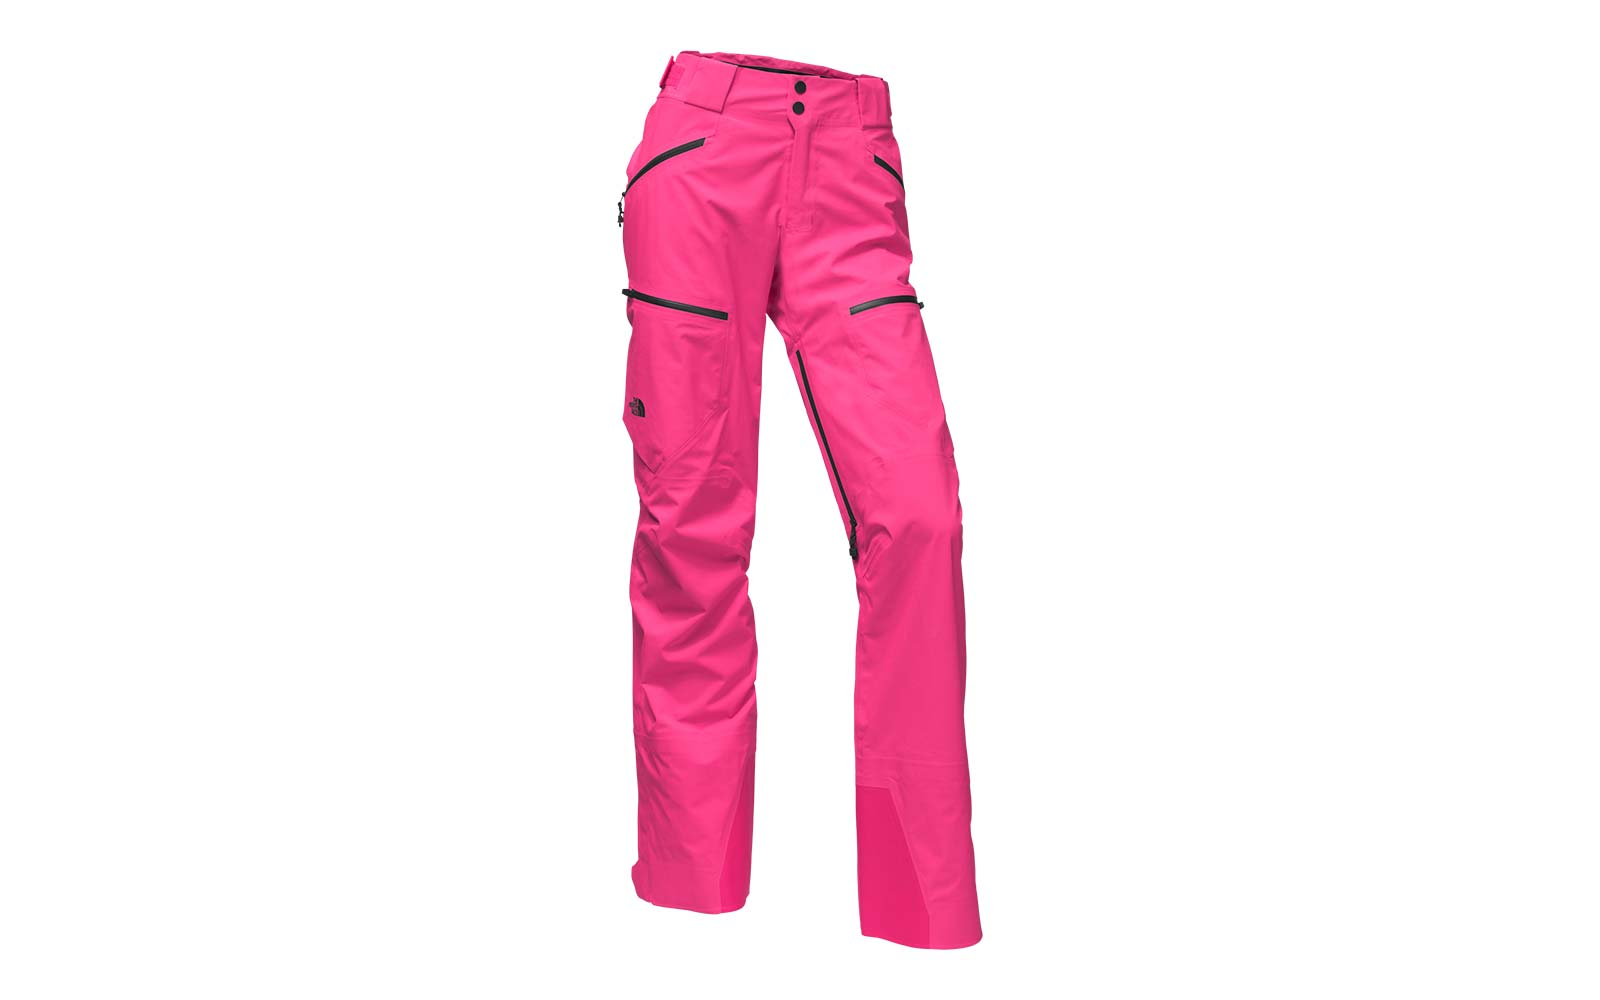 north face purist pants